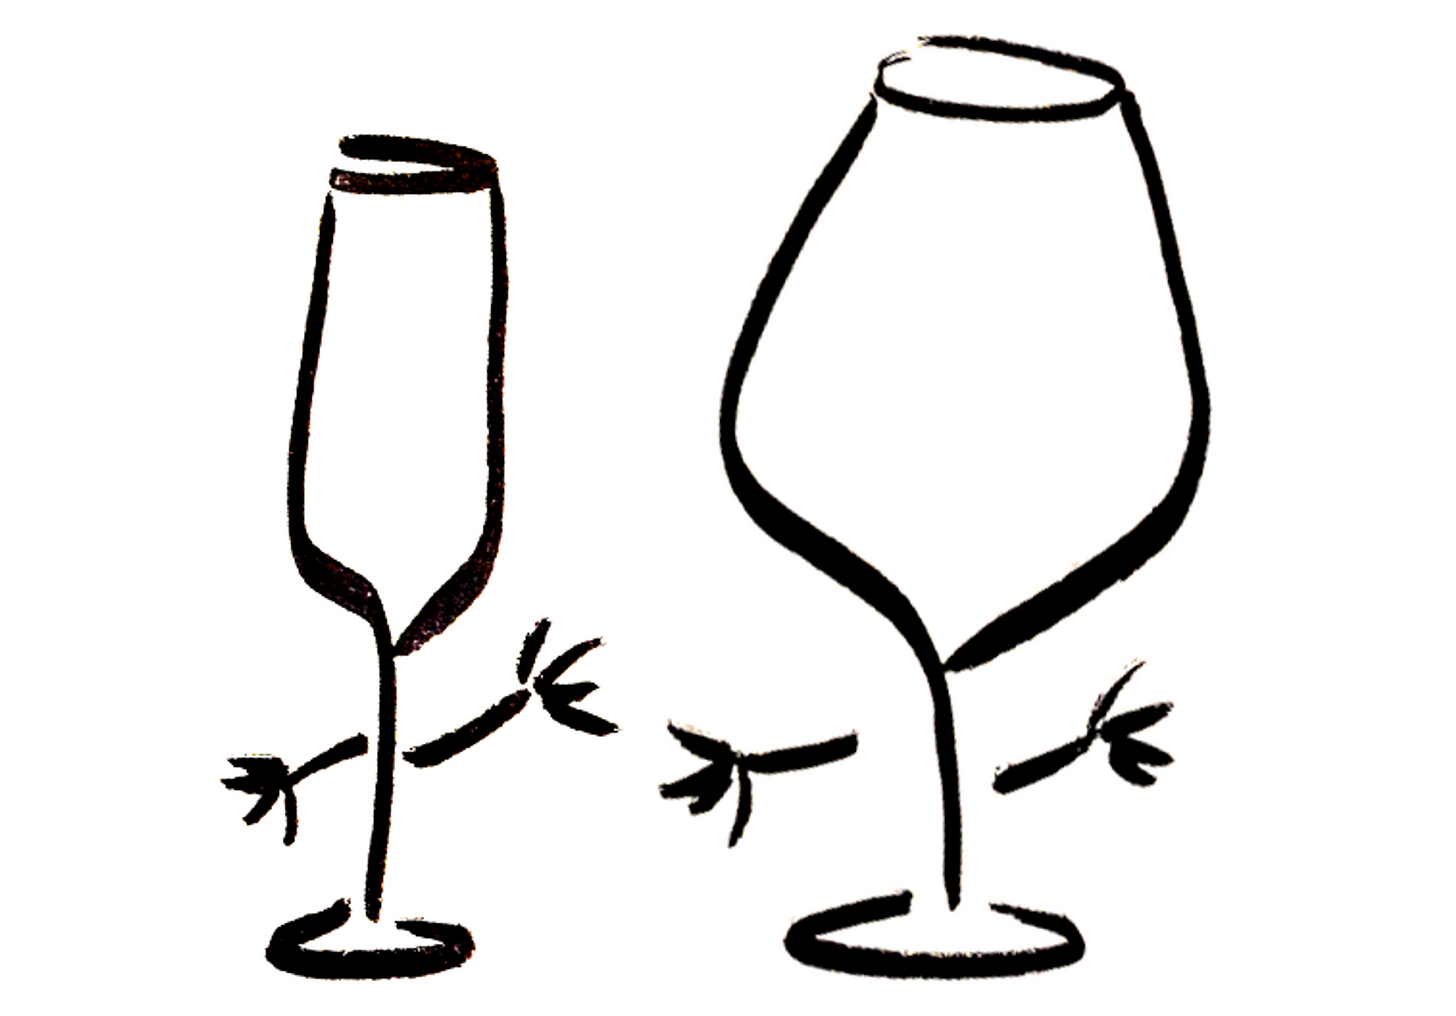 Two anthropomorphic wine glasses being friendly